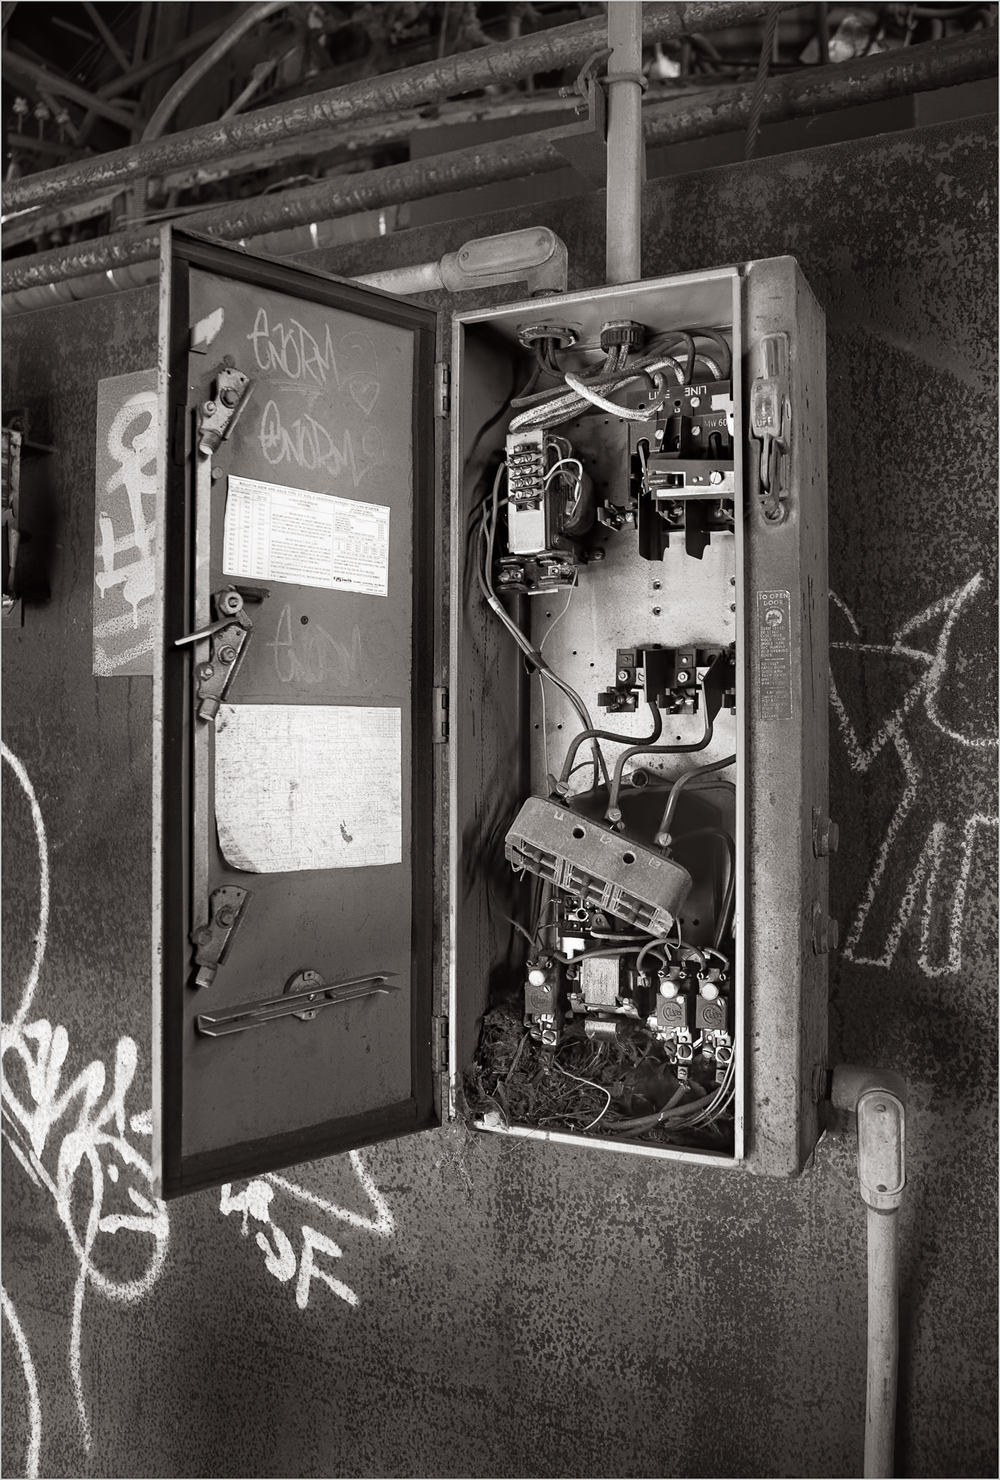 A vandalized electrical box at the Carrie Furnace, an abandoned steel mill near Pittsburgh, PA.